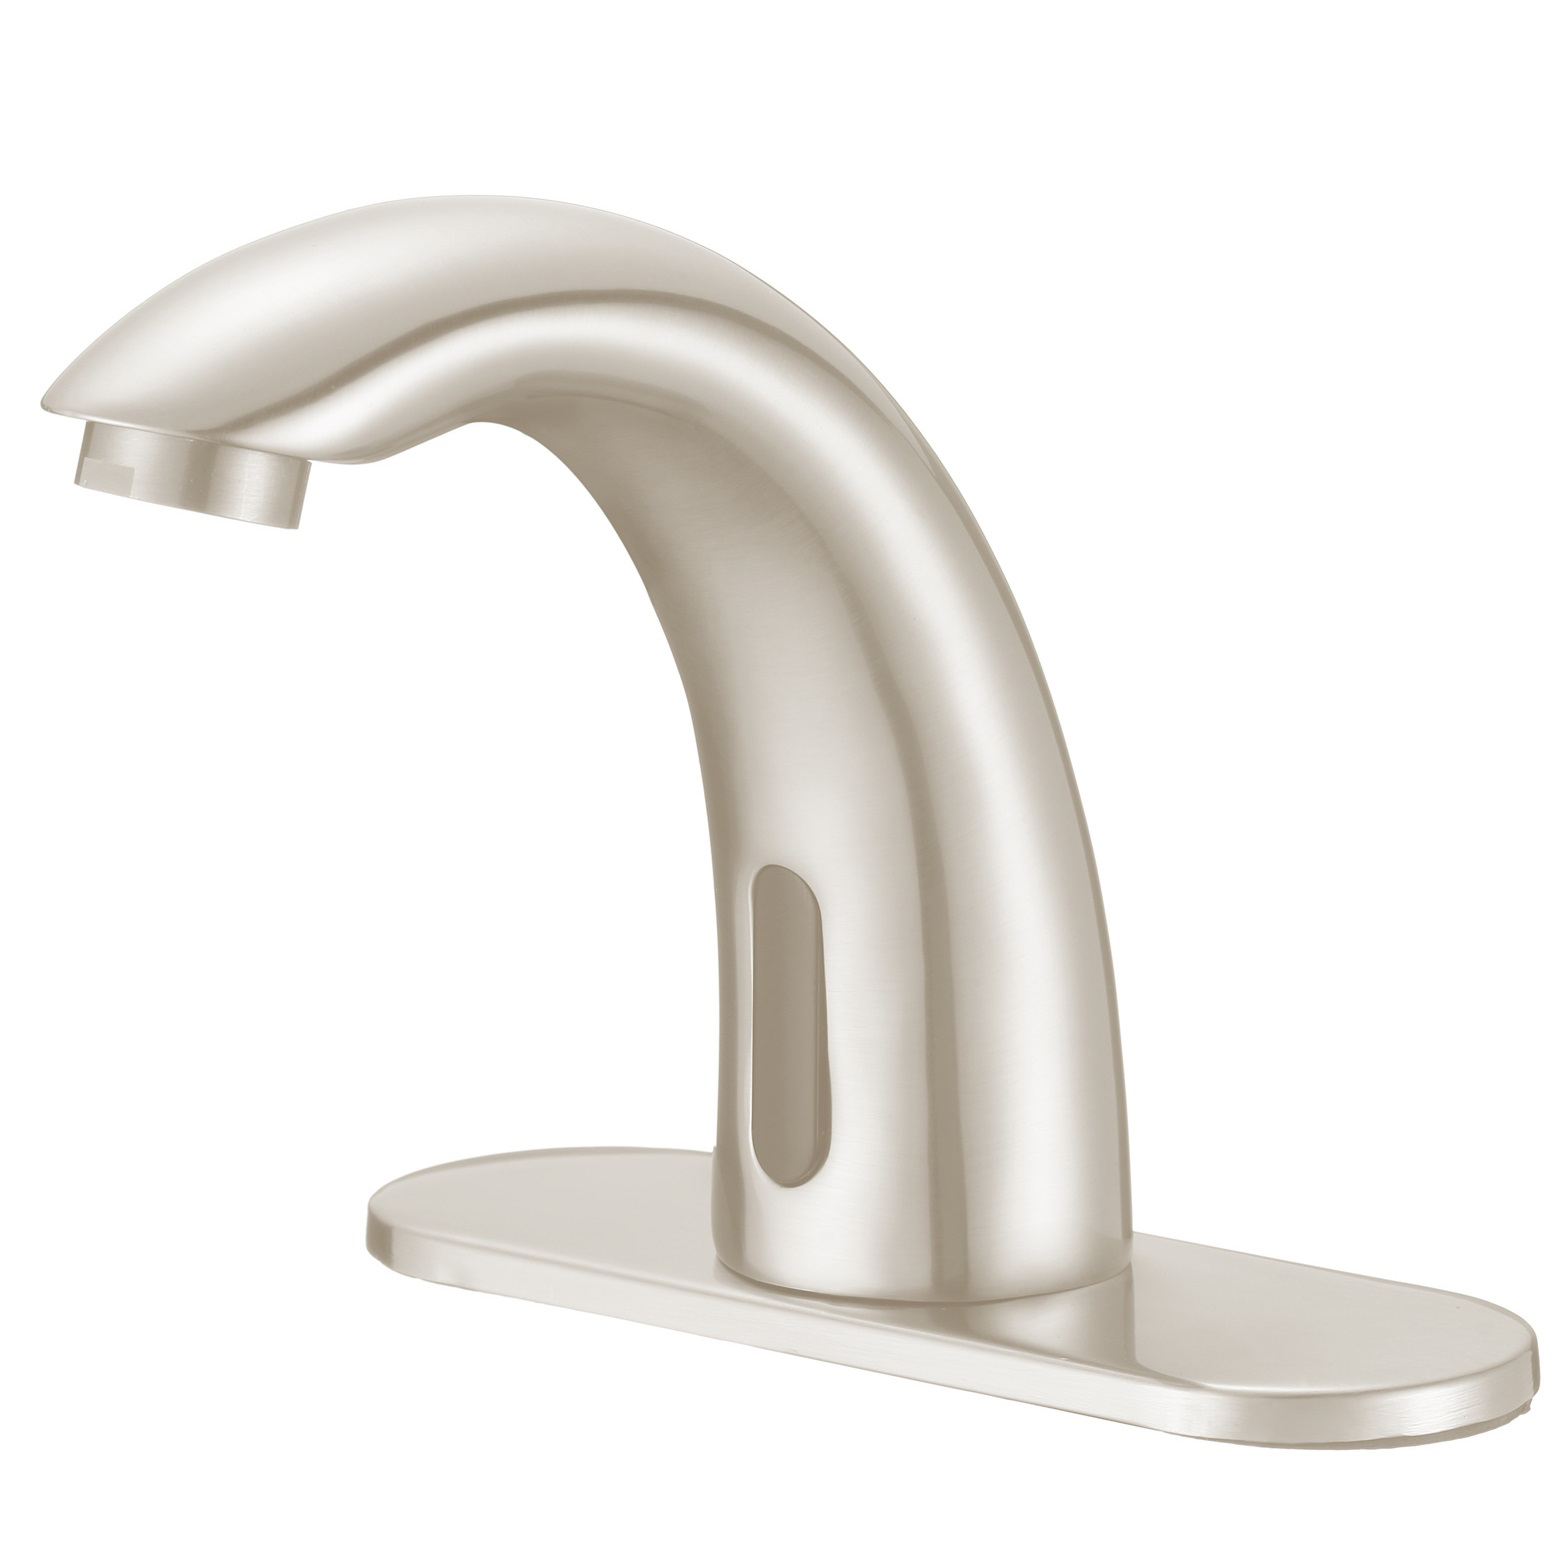 Shop Lano Sensor Faucet In Brushed Nickel Finish At Bathselect